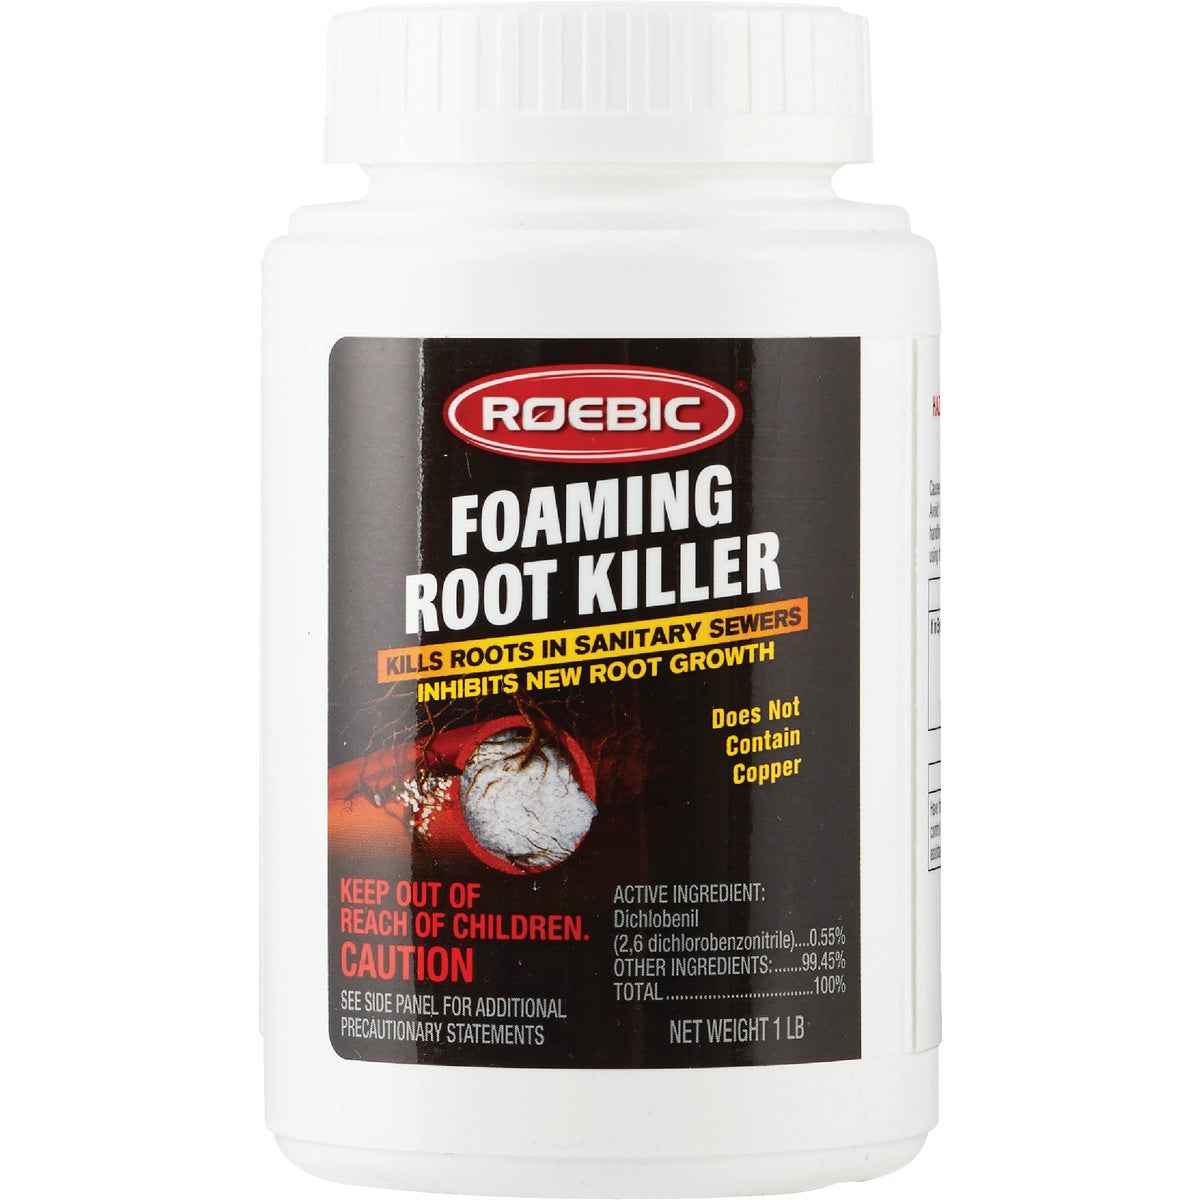 FOAMING ROOT KILLER - FRK by Roebic Laboratories